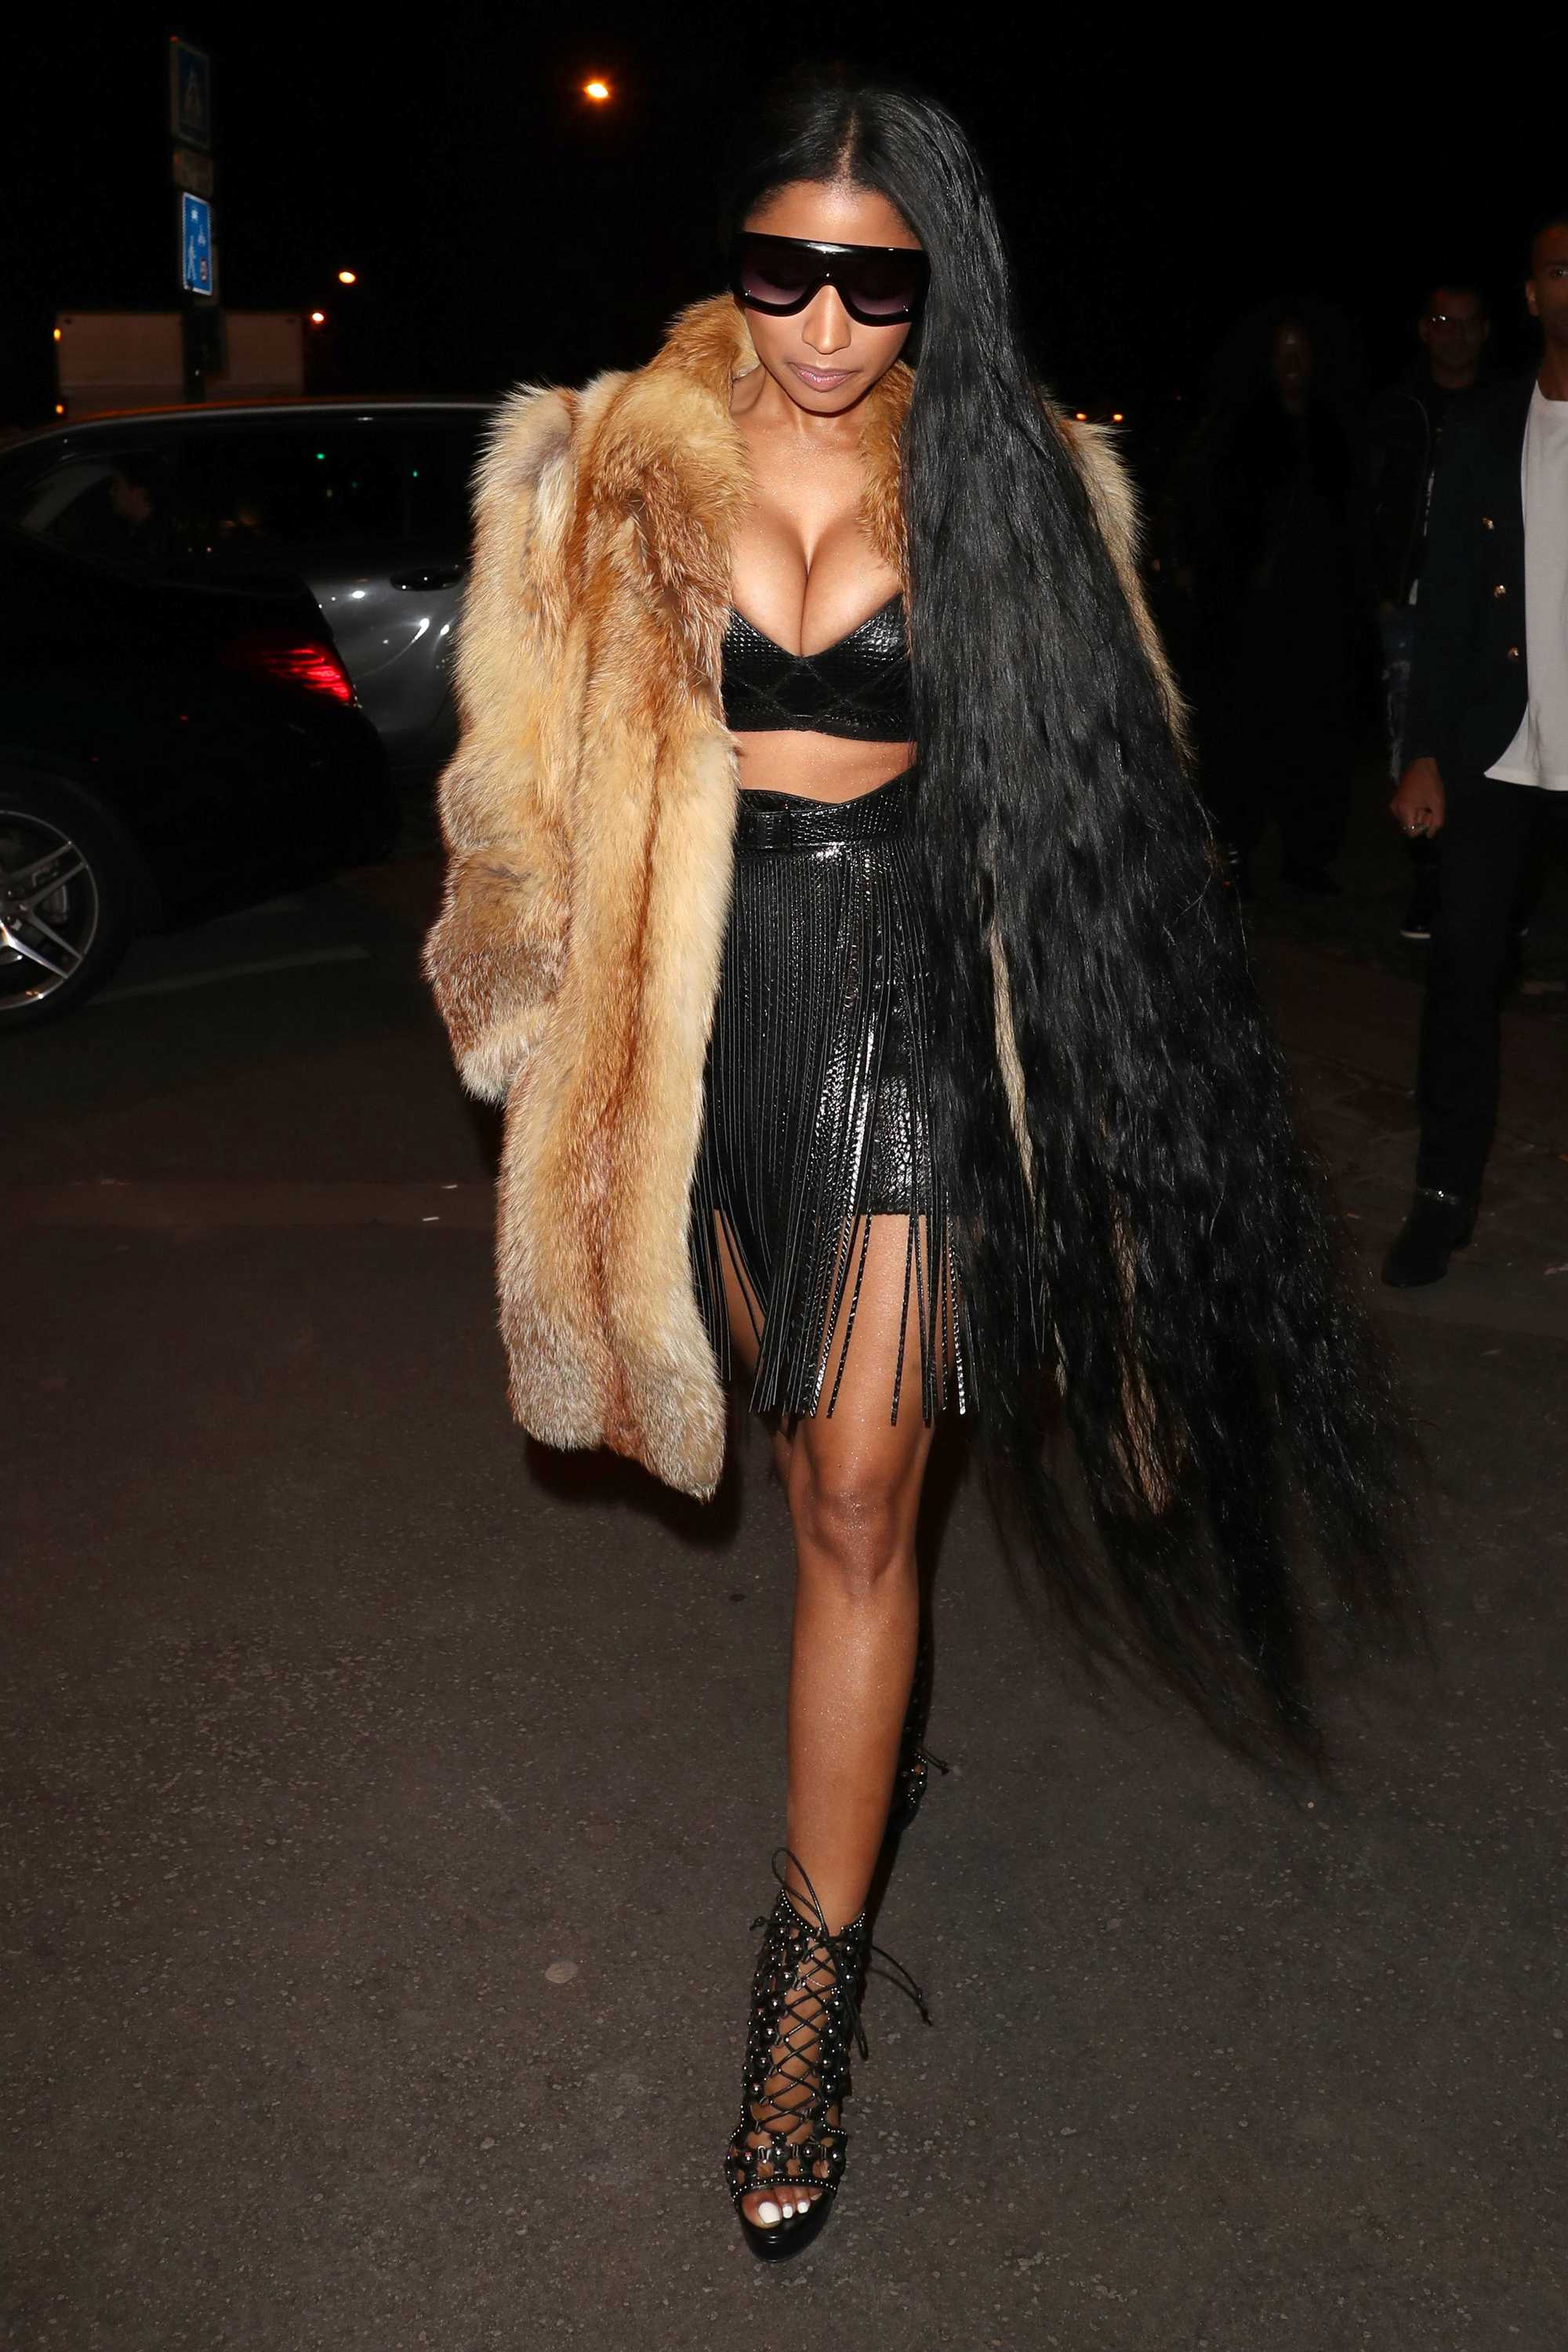 nicki minaj with really long hair, fur jacket wearing all black street style shot